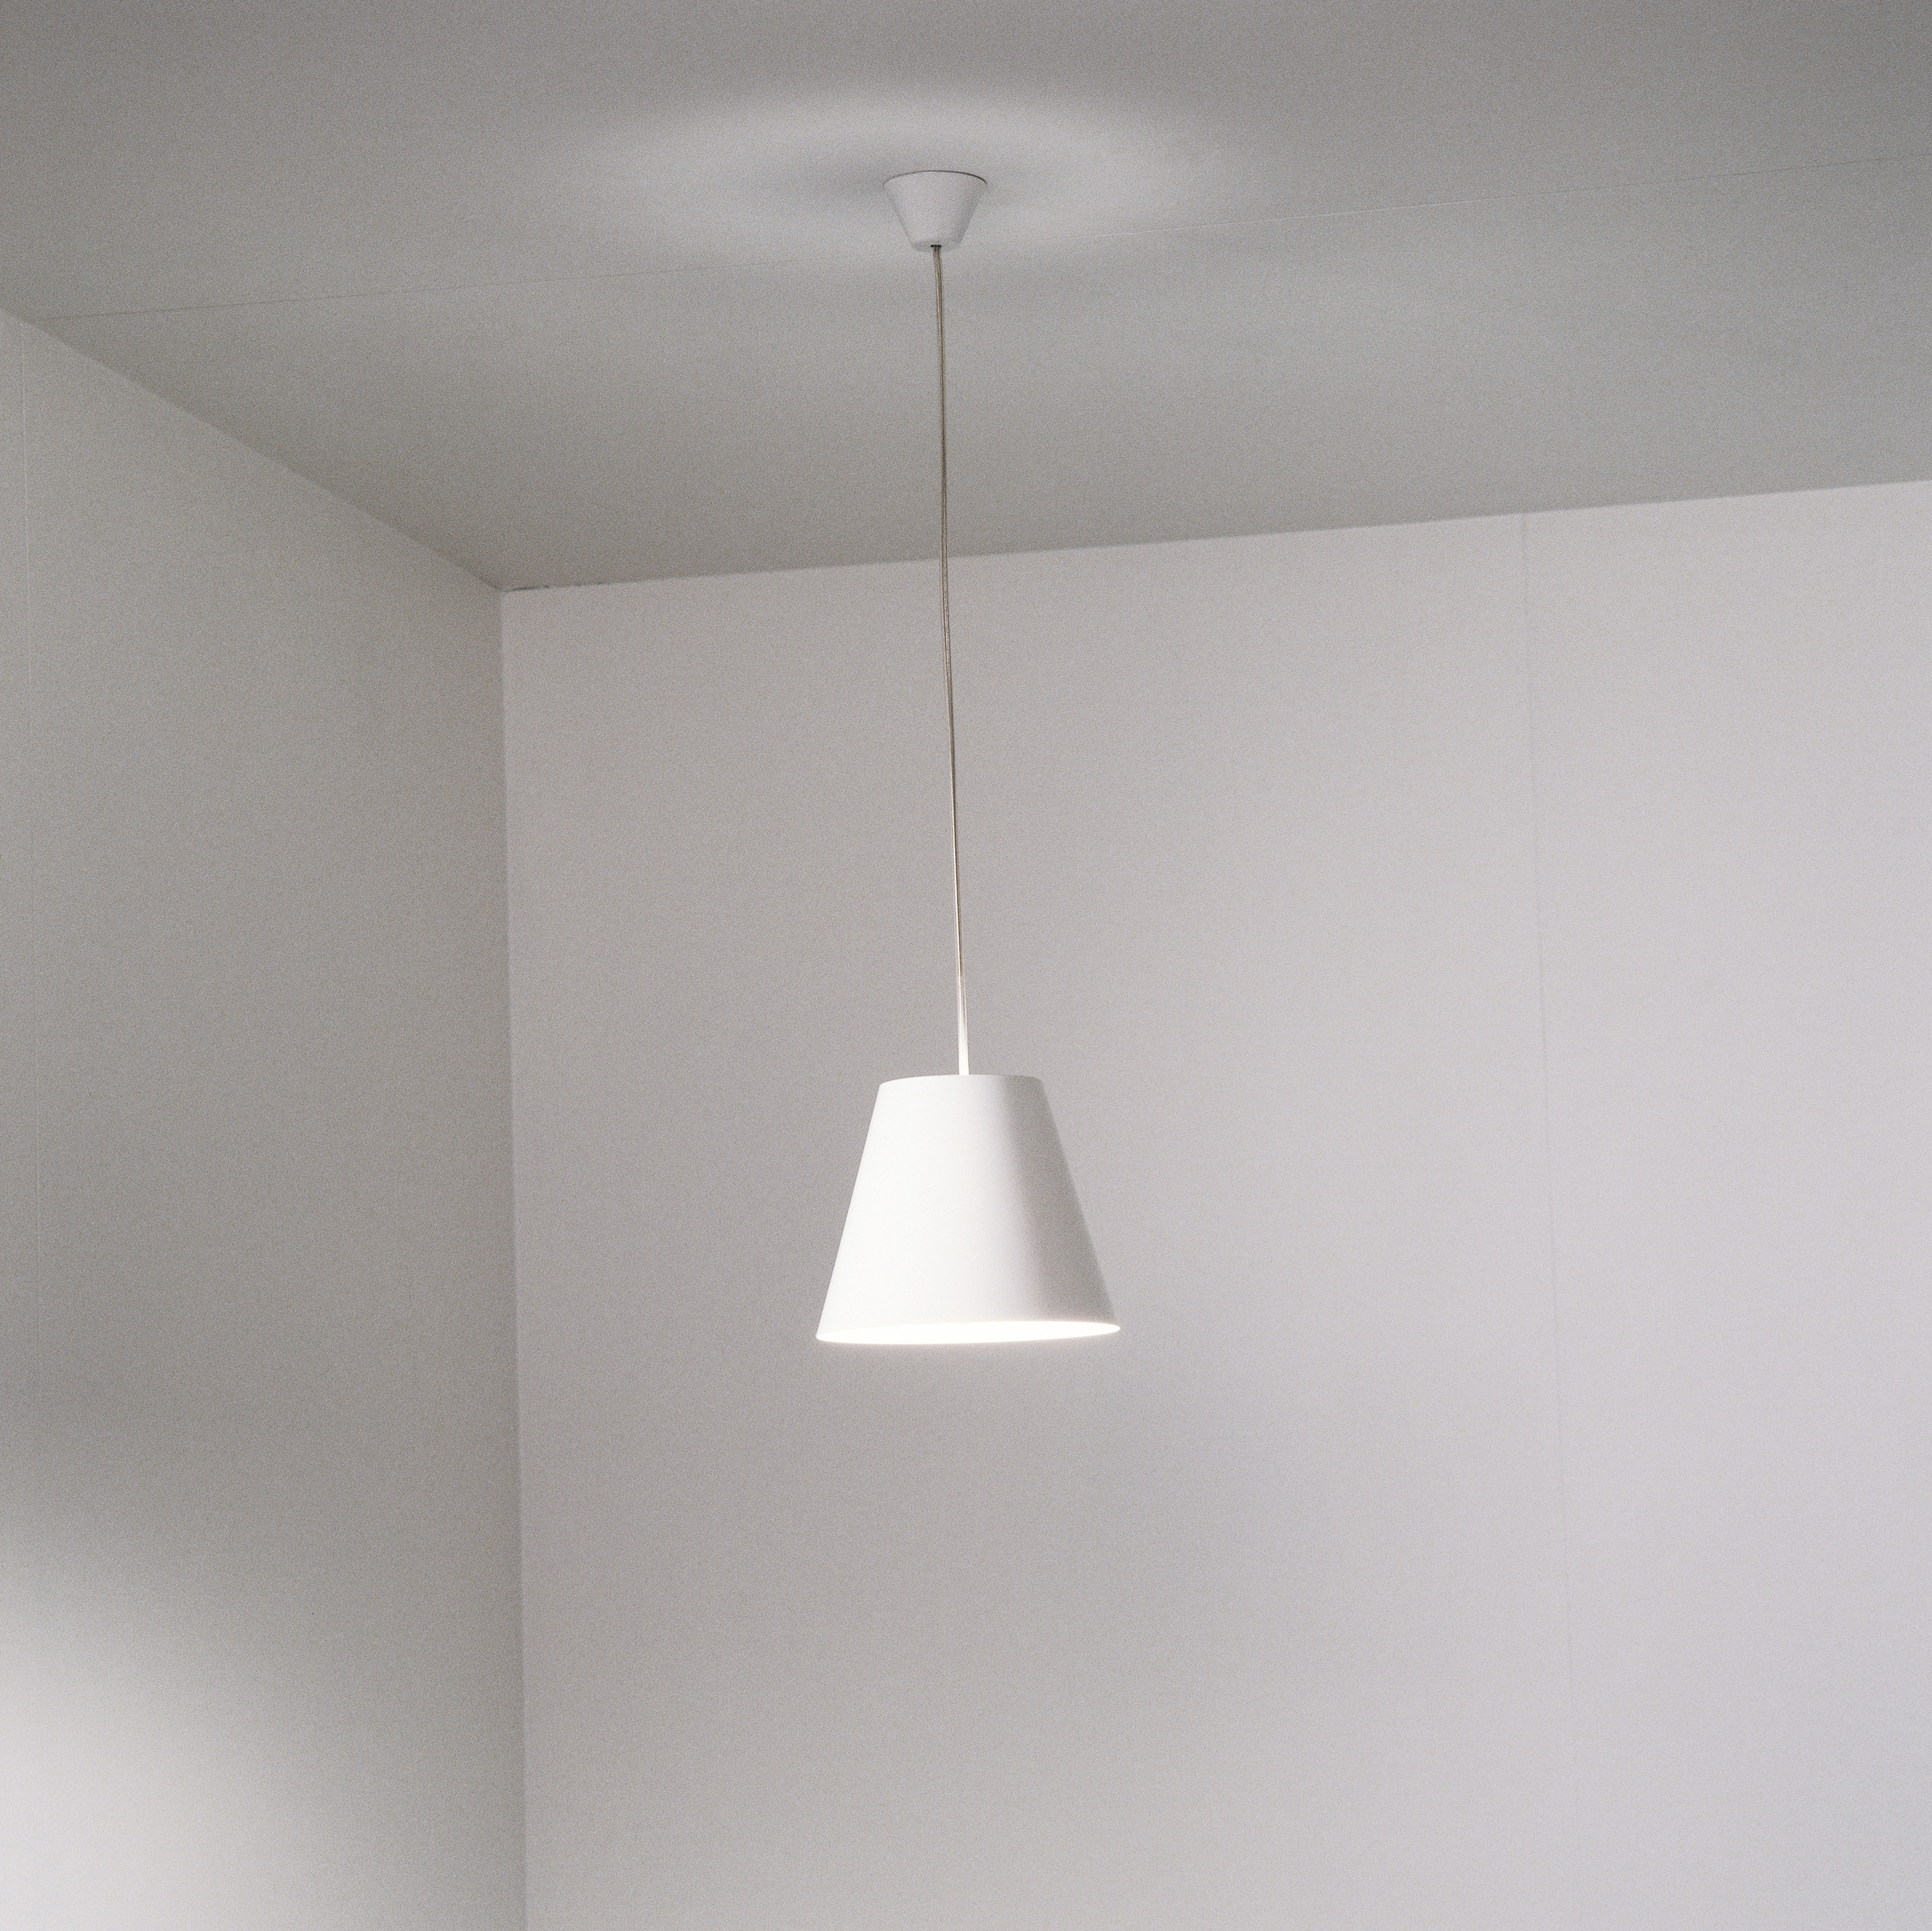 ISM Objects_Shady small white_Pendant copy.jpg